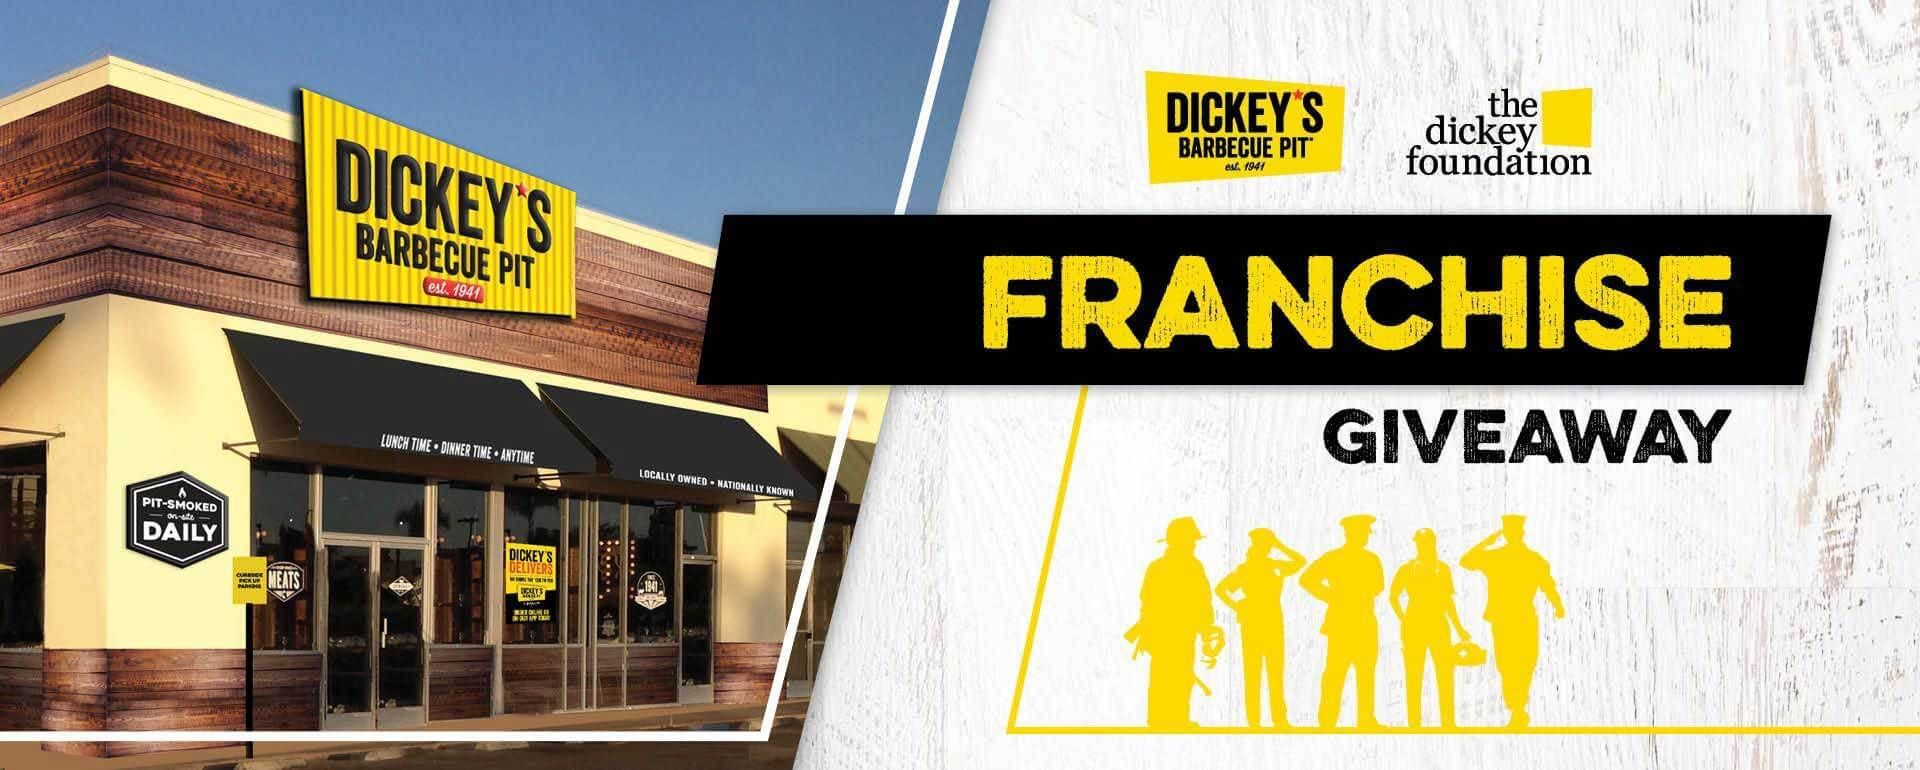 Franchise Fee Giveaway for Dickey's Barbecue Pit